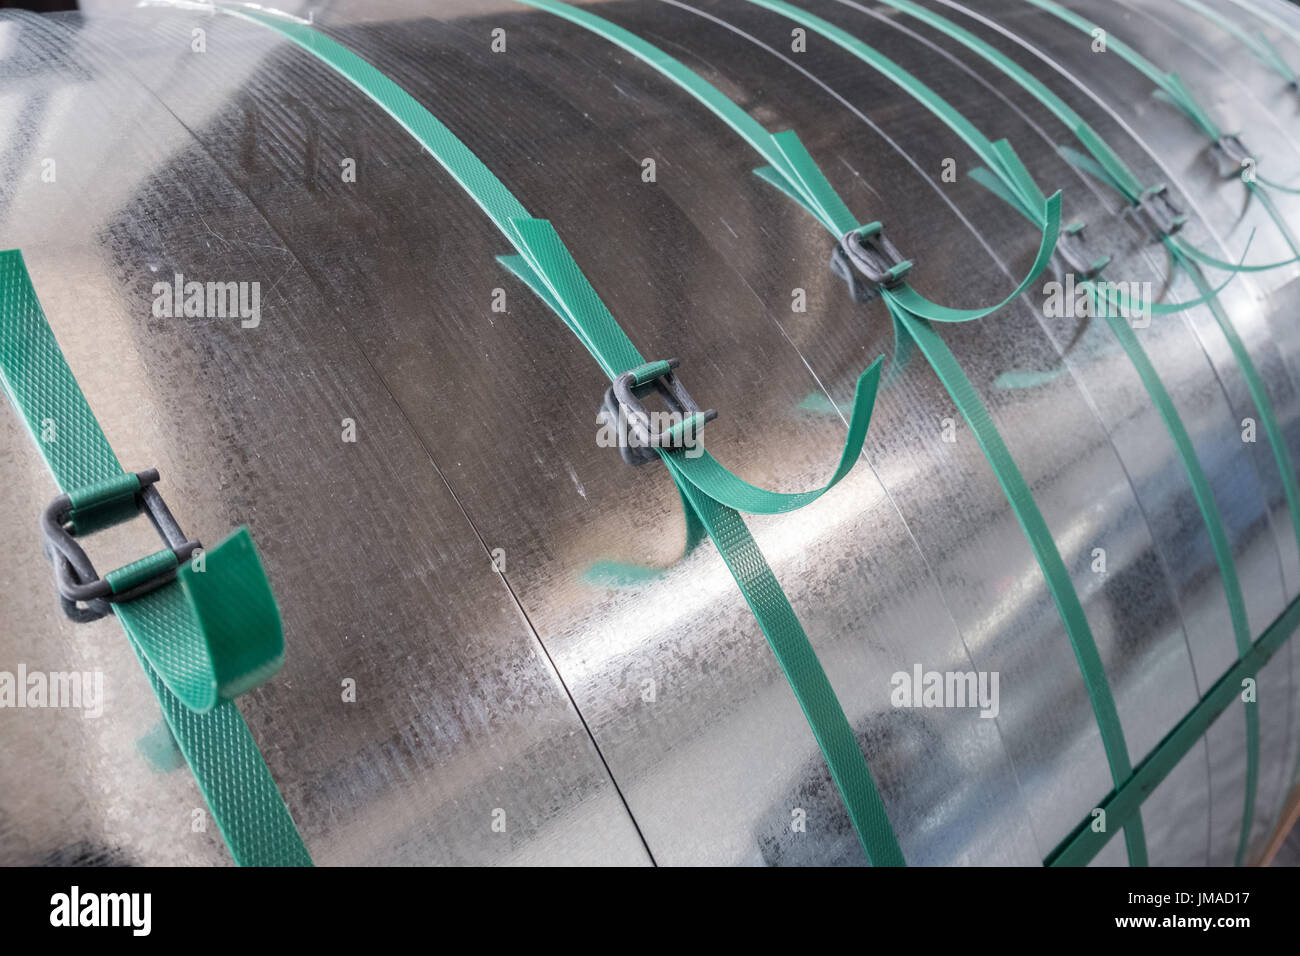 Galvanized steel coils strapped tied by plastic strips - Stock Image